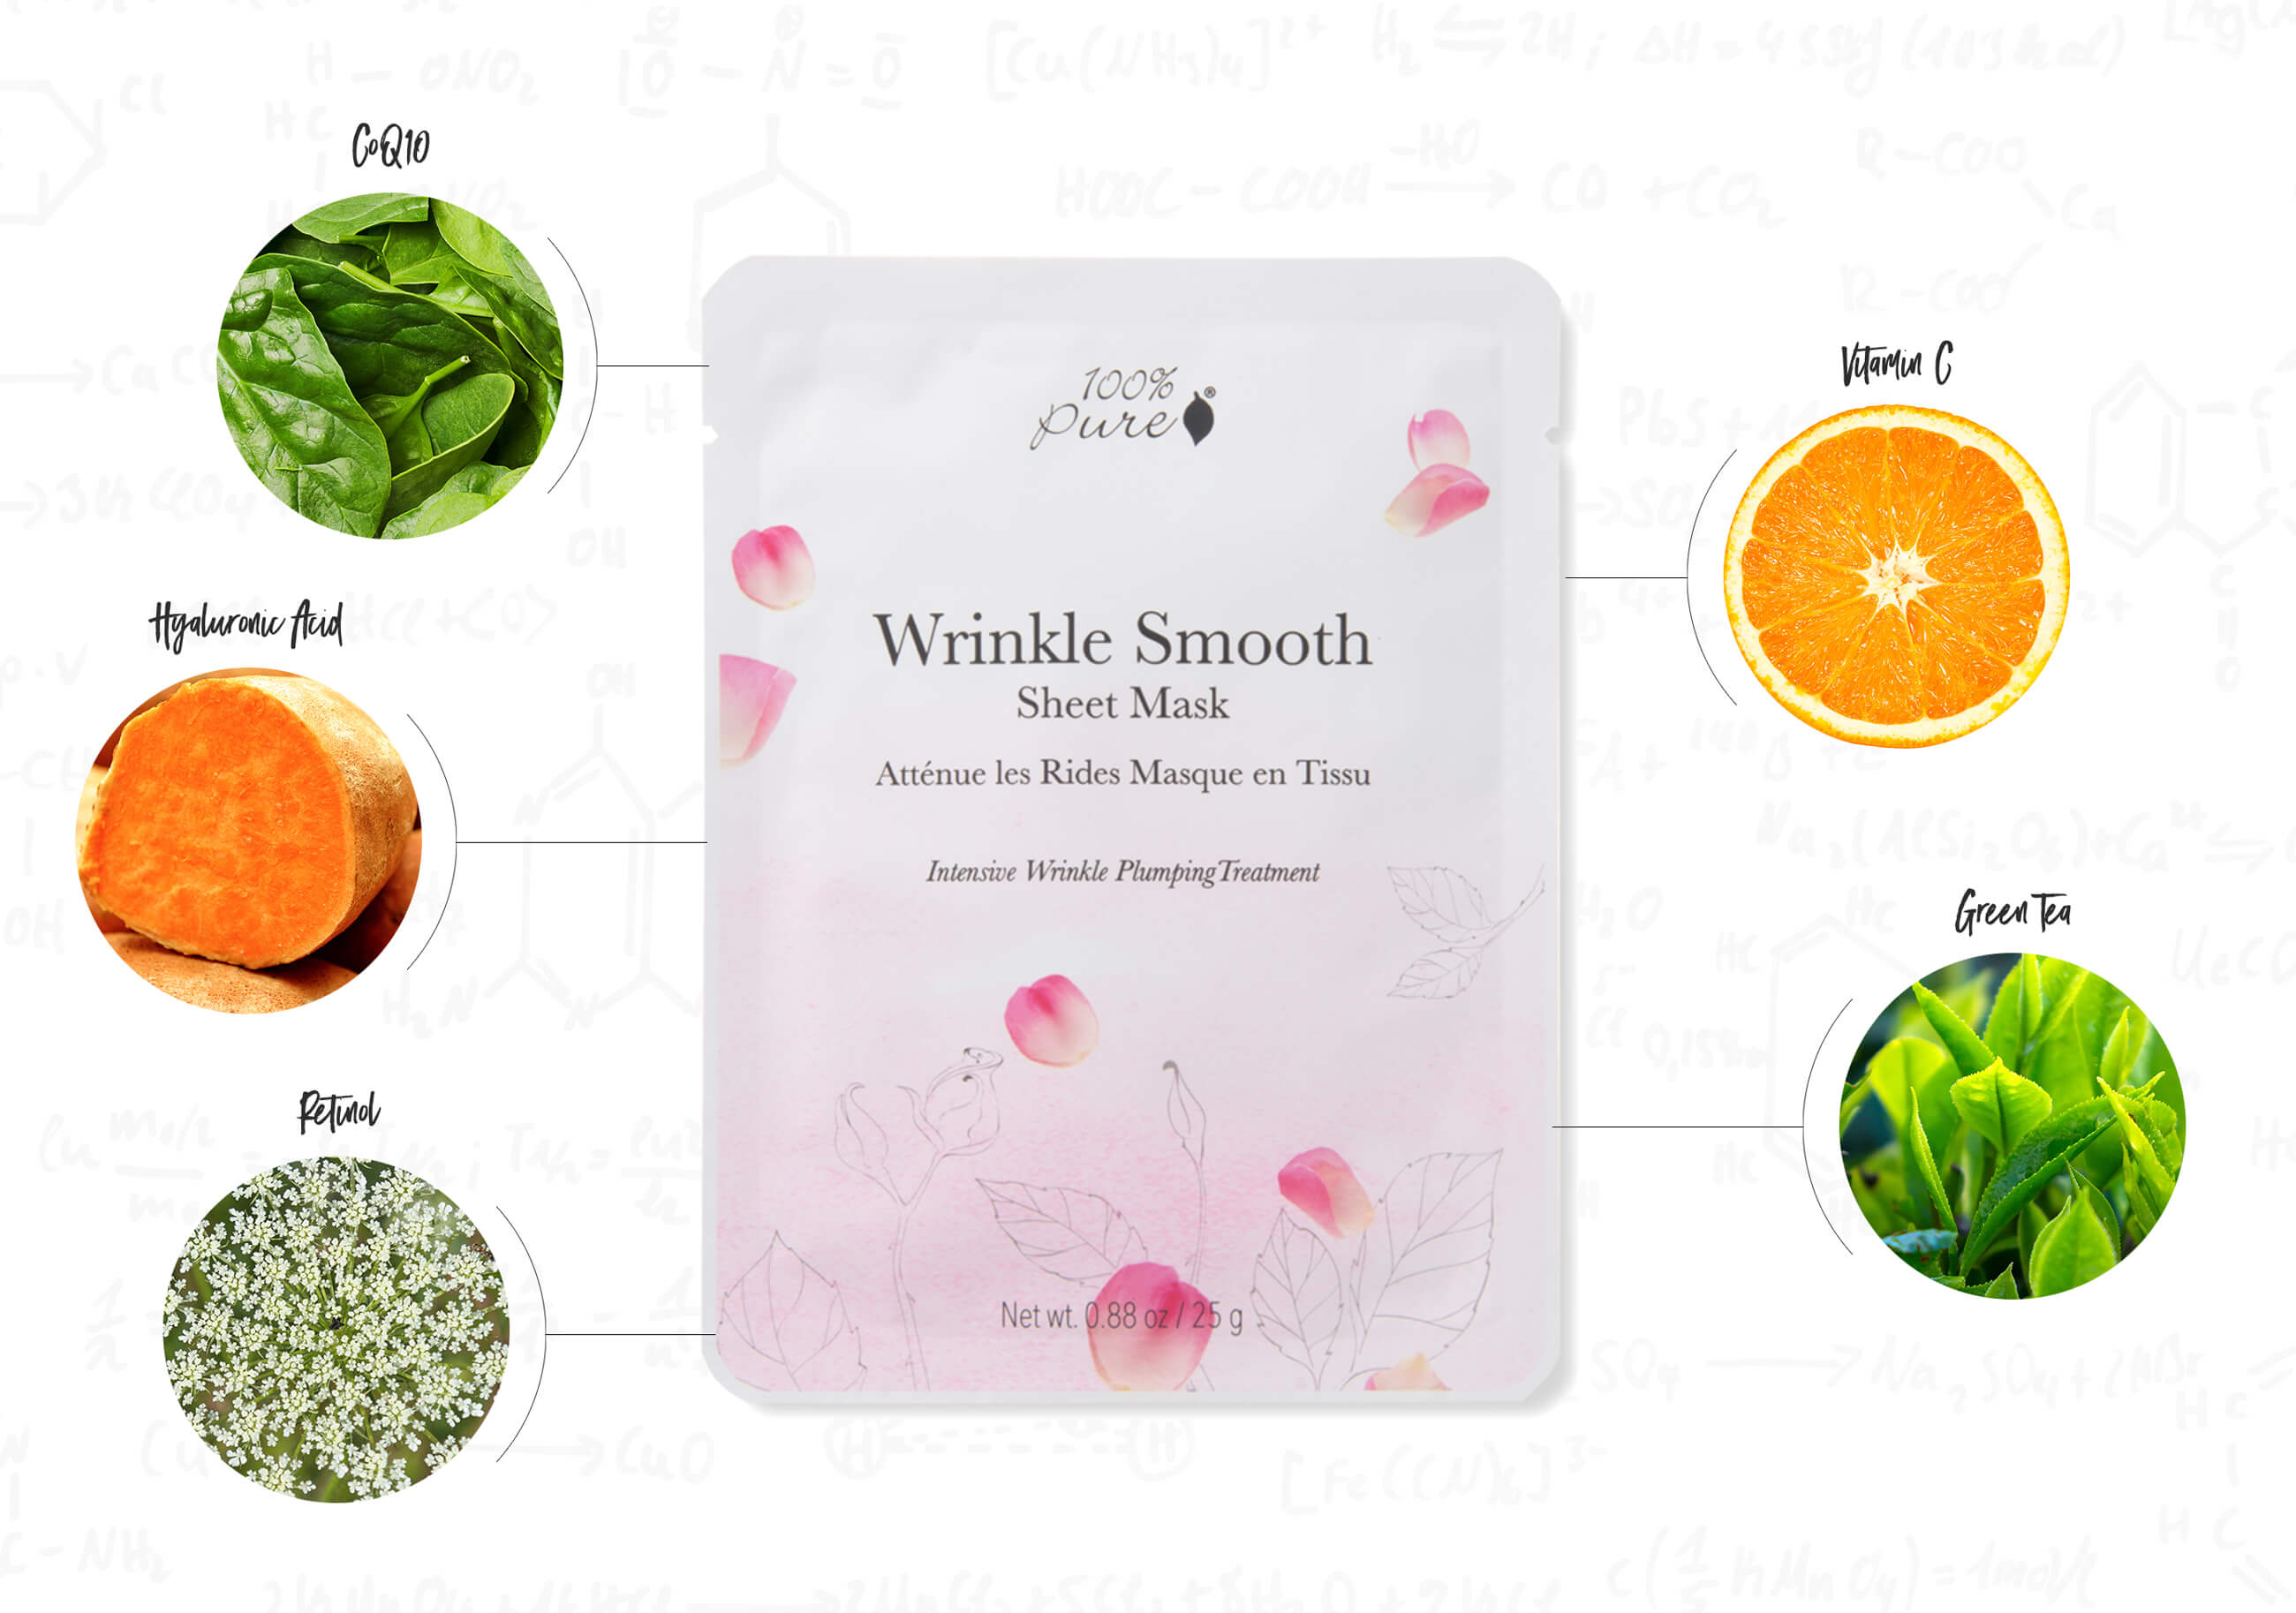 wrinkle smooth sheet mask infographic